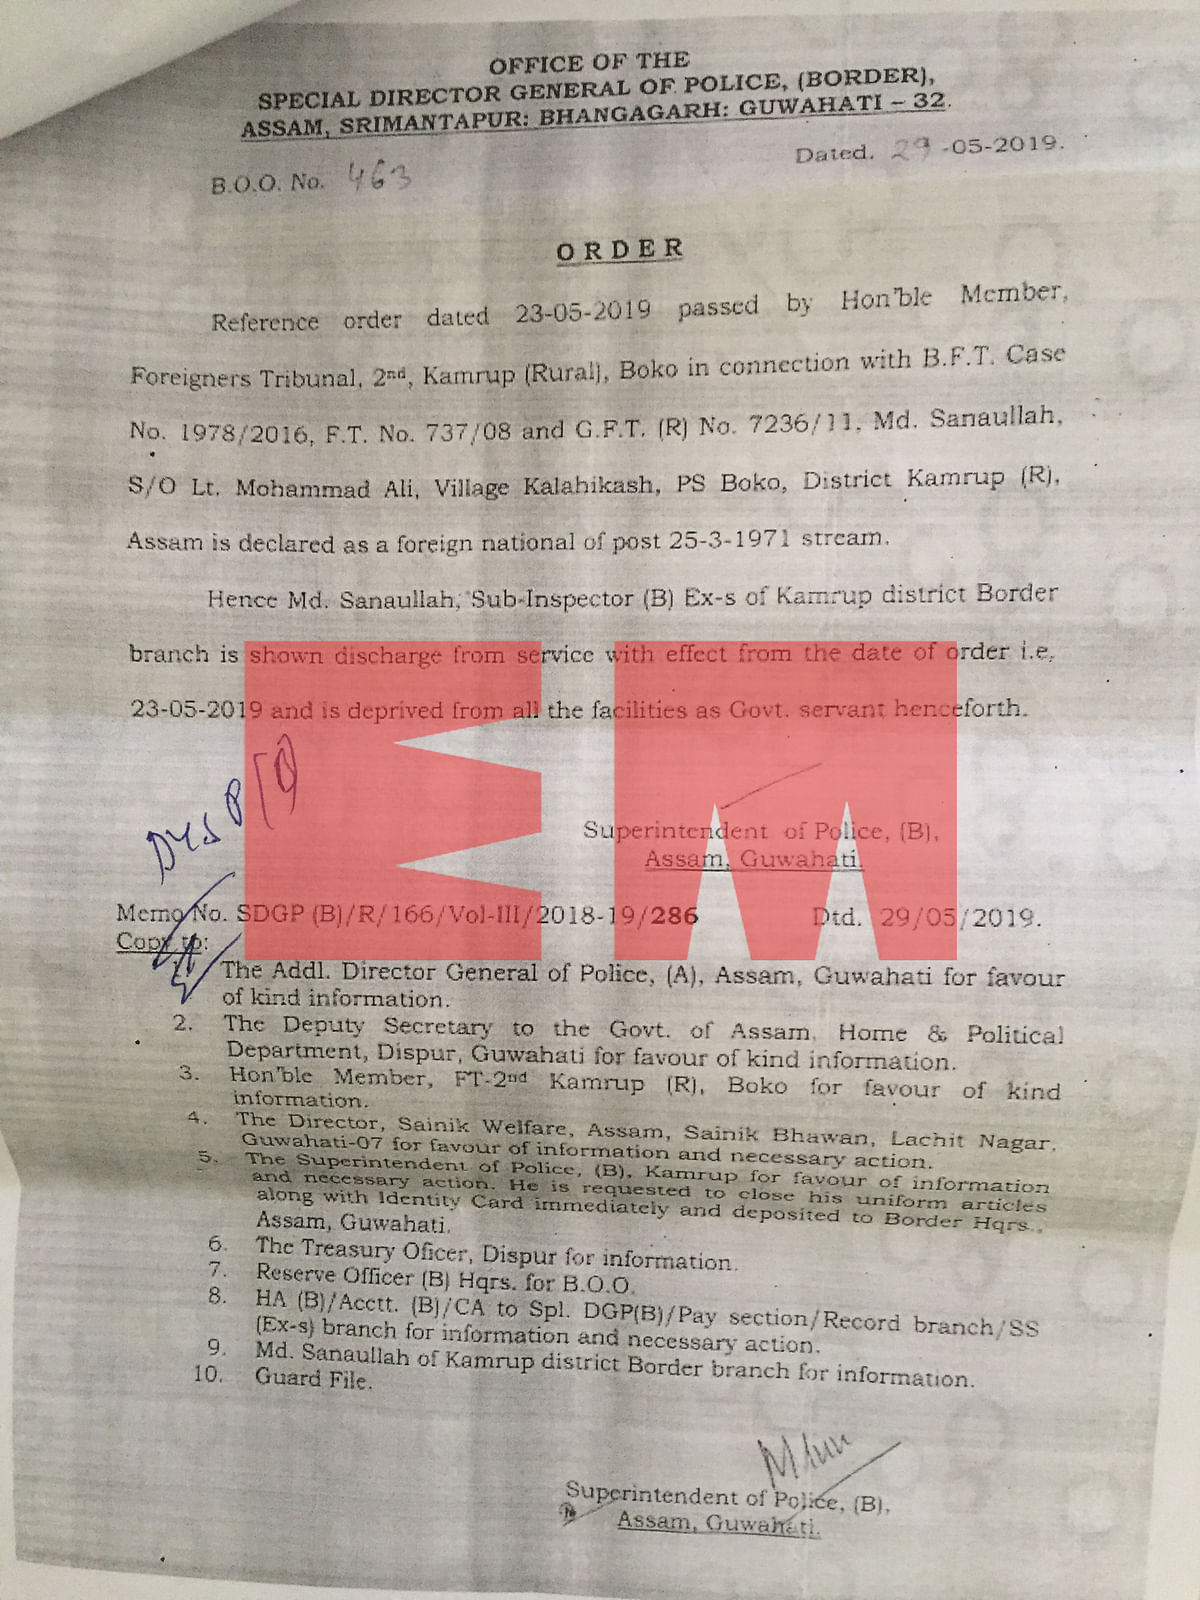 The order letter issued by the Special Director General of Police (Border), Assam to discharge Mohammed Sanaullah from service